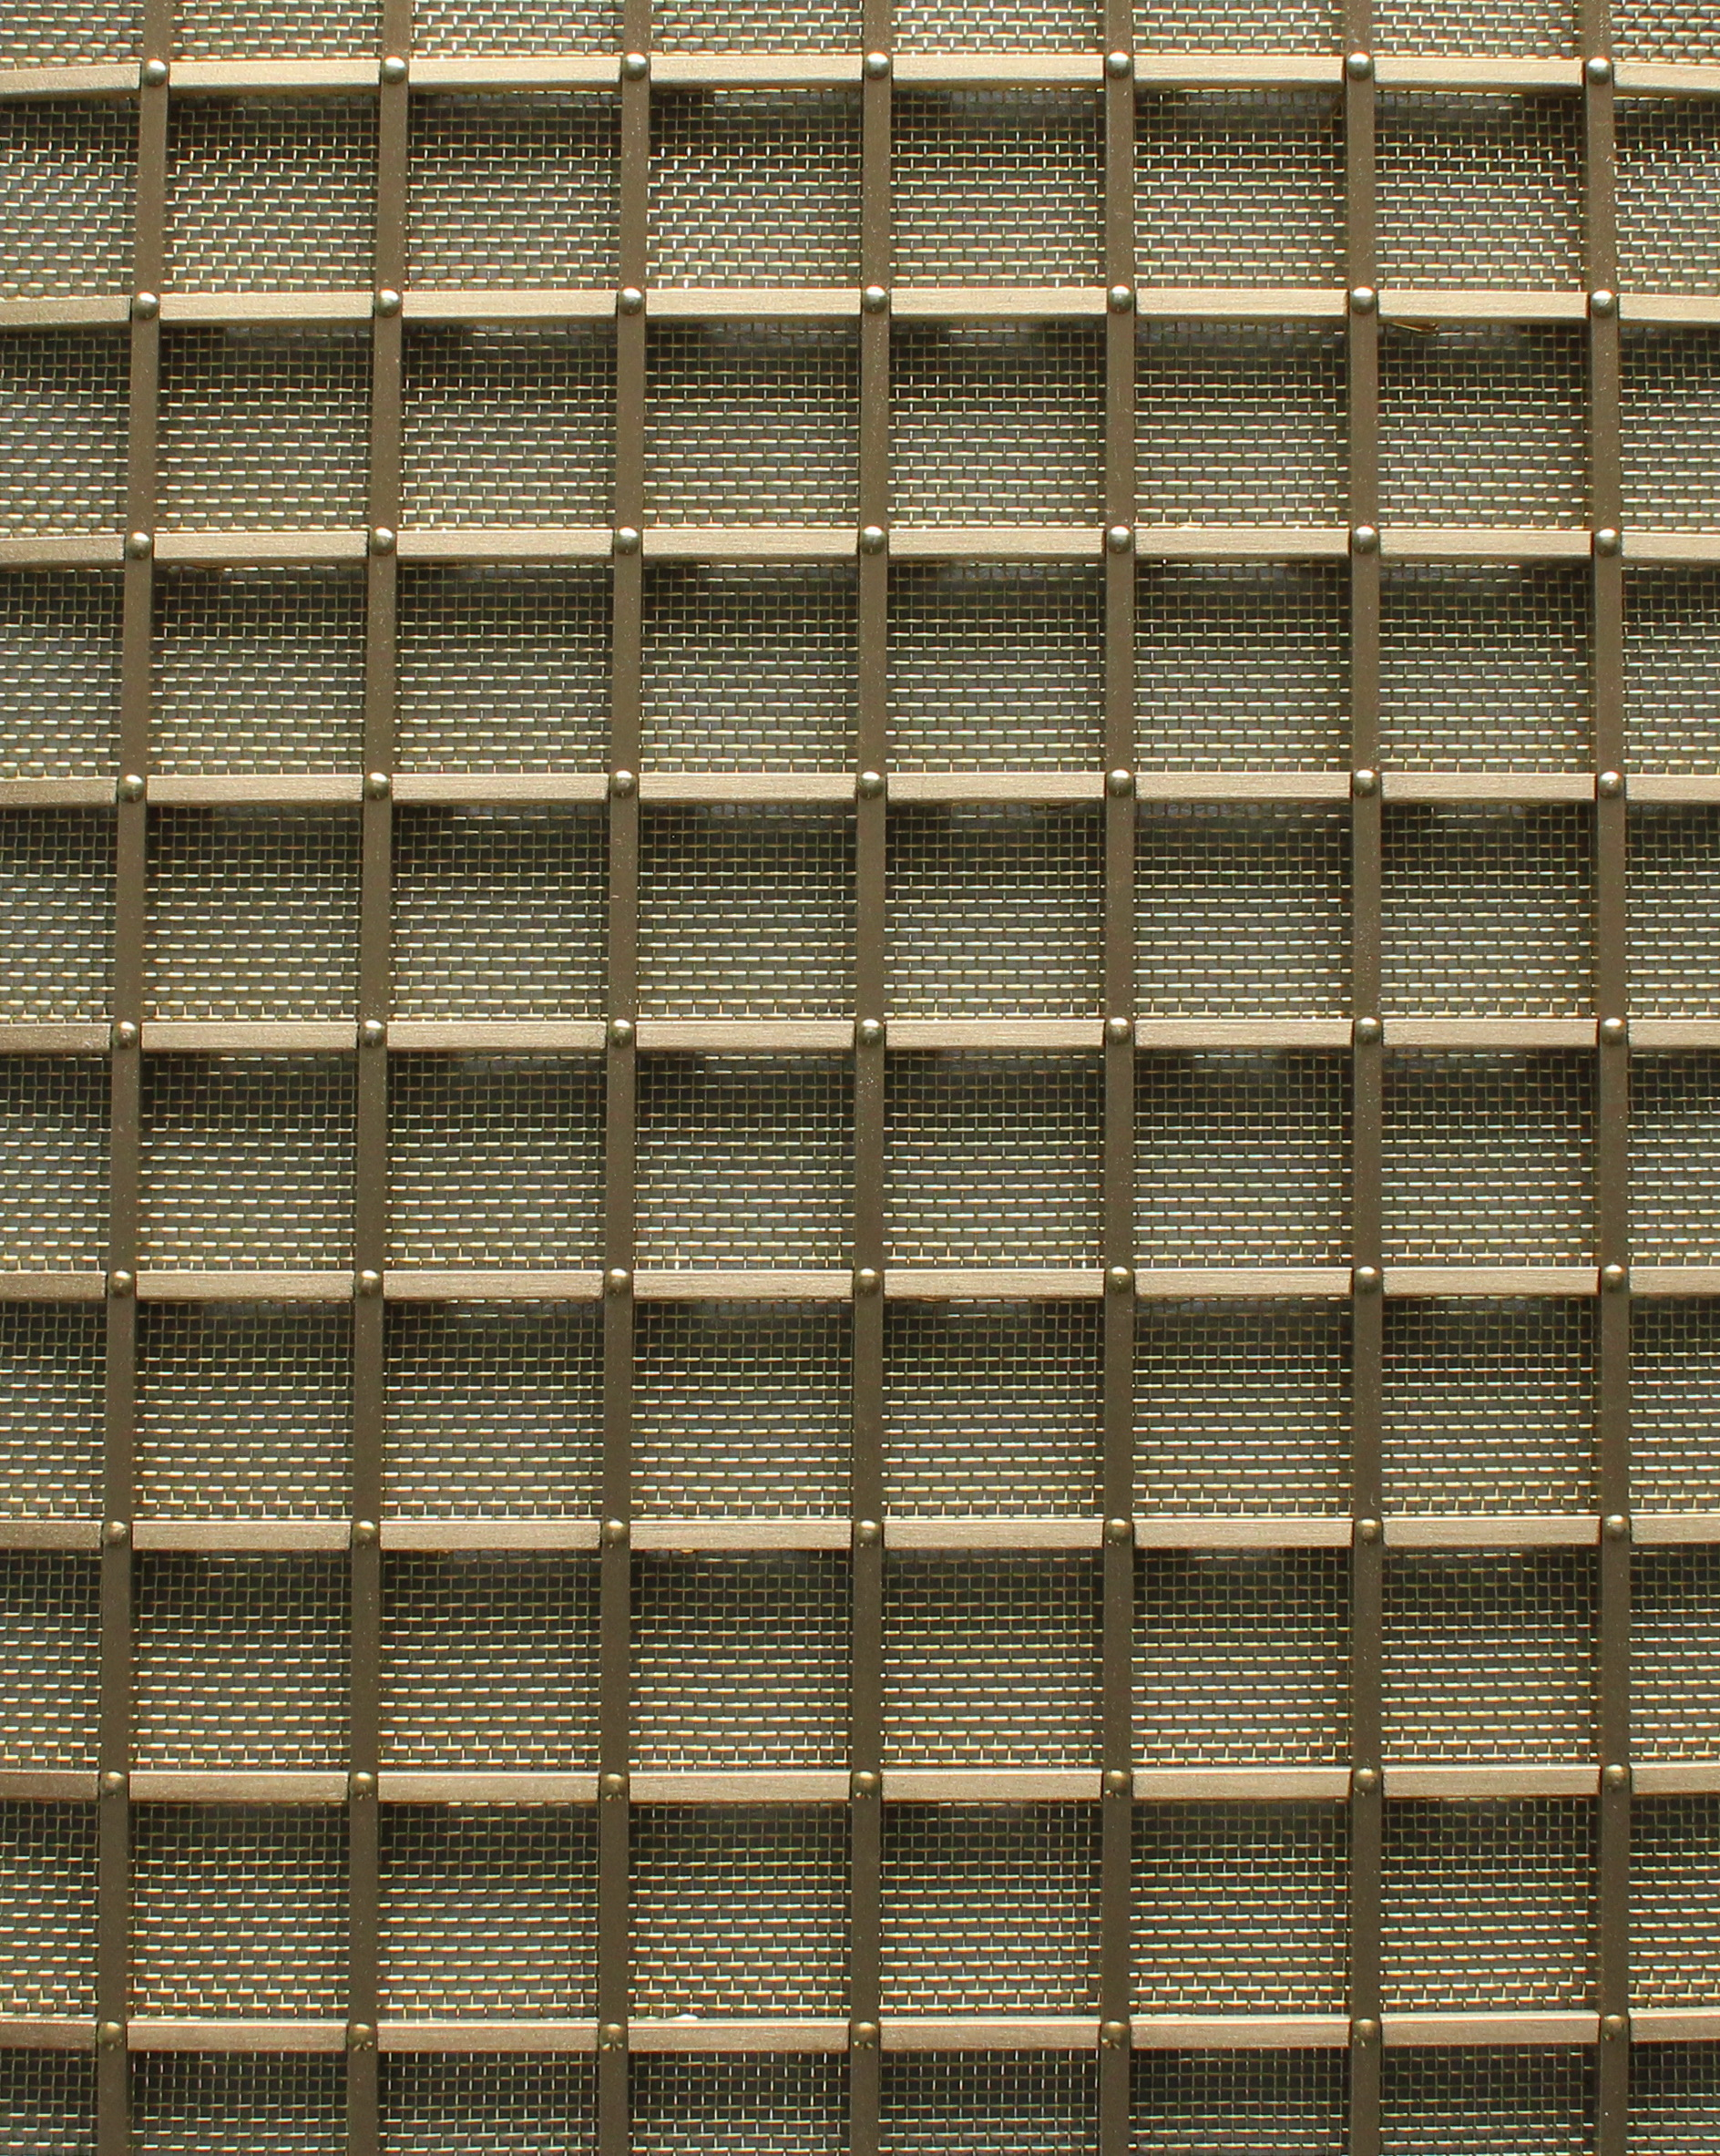 Small Square Grille (25mm)